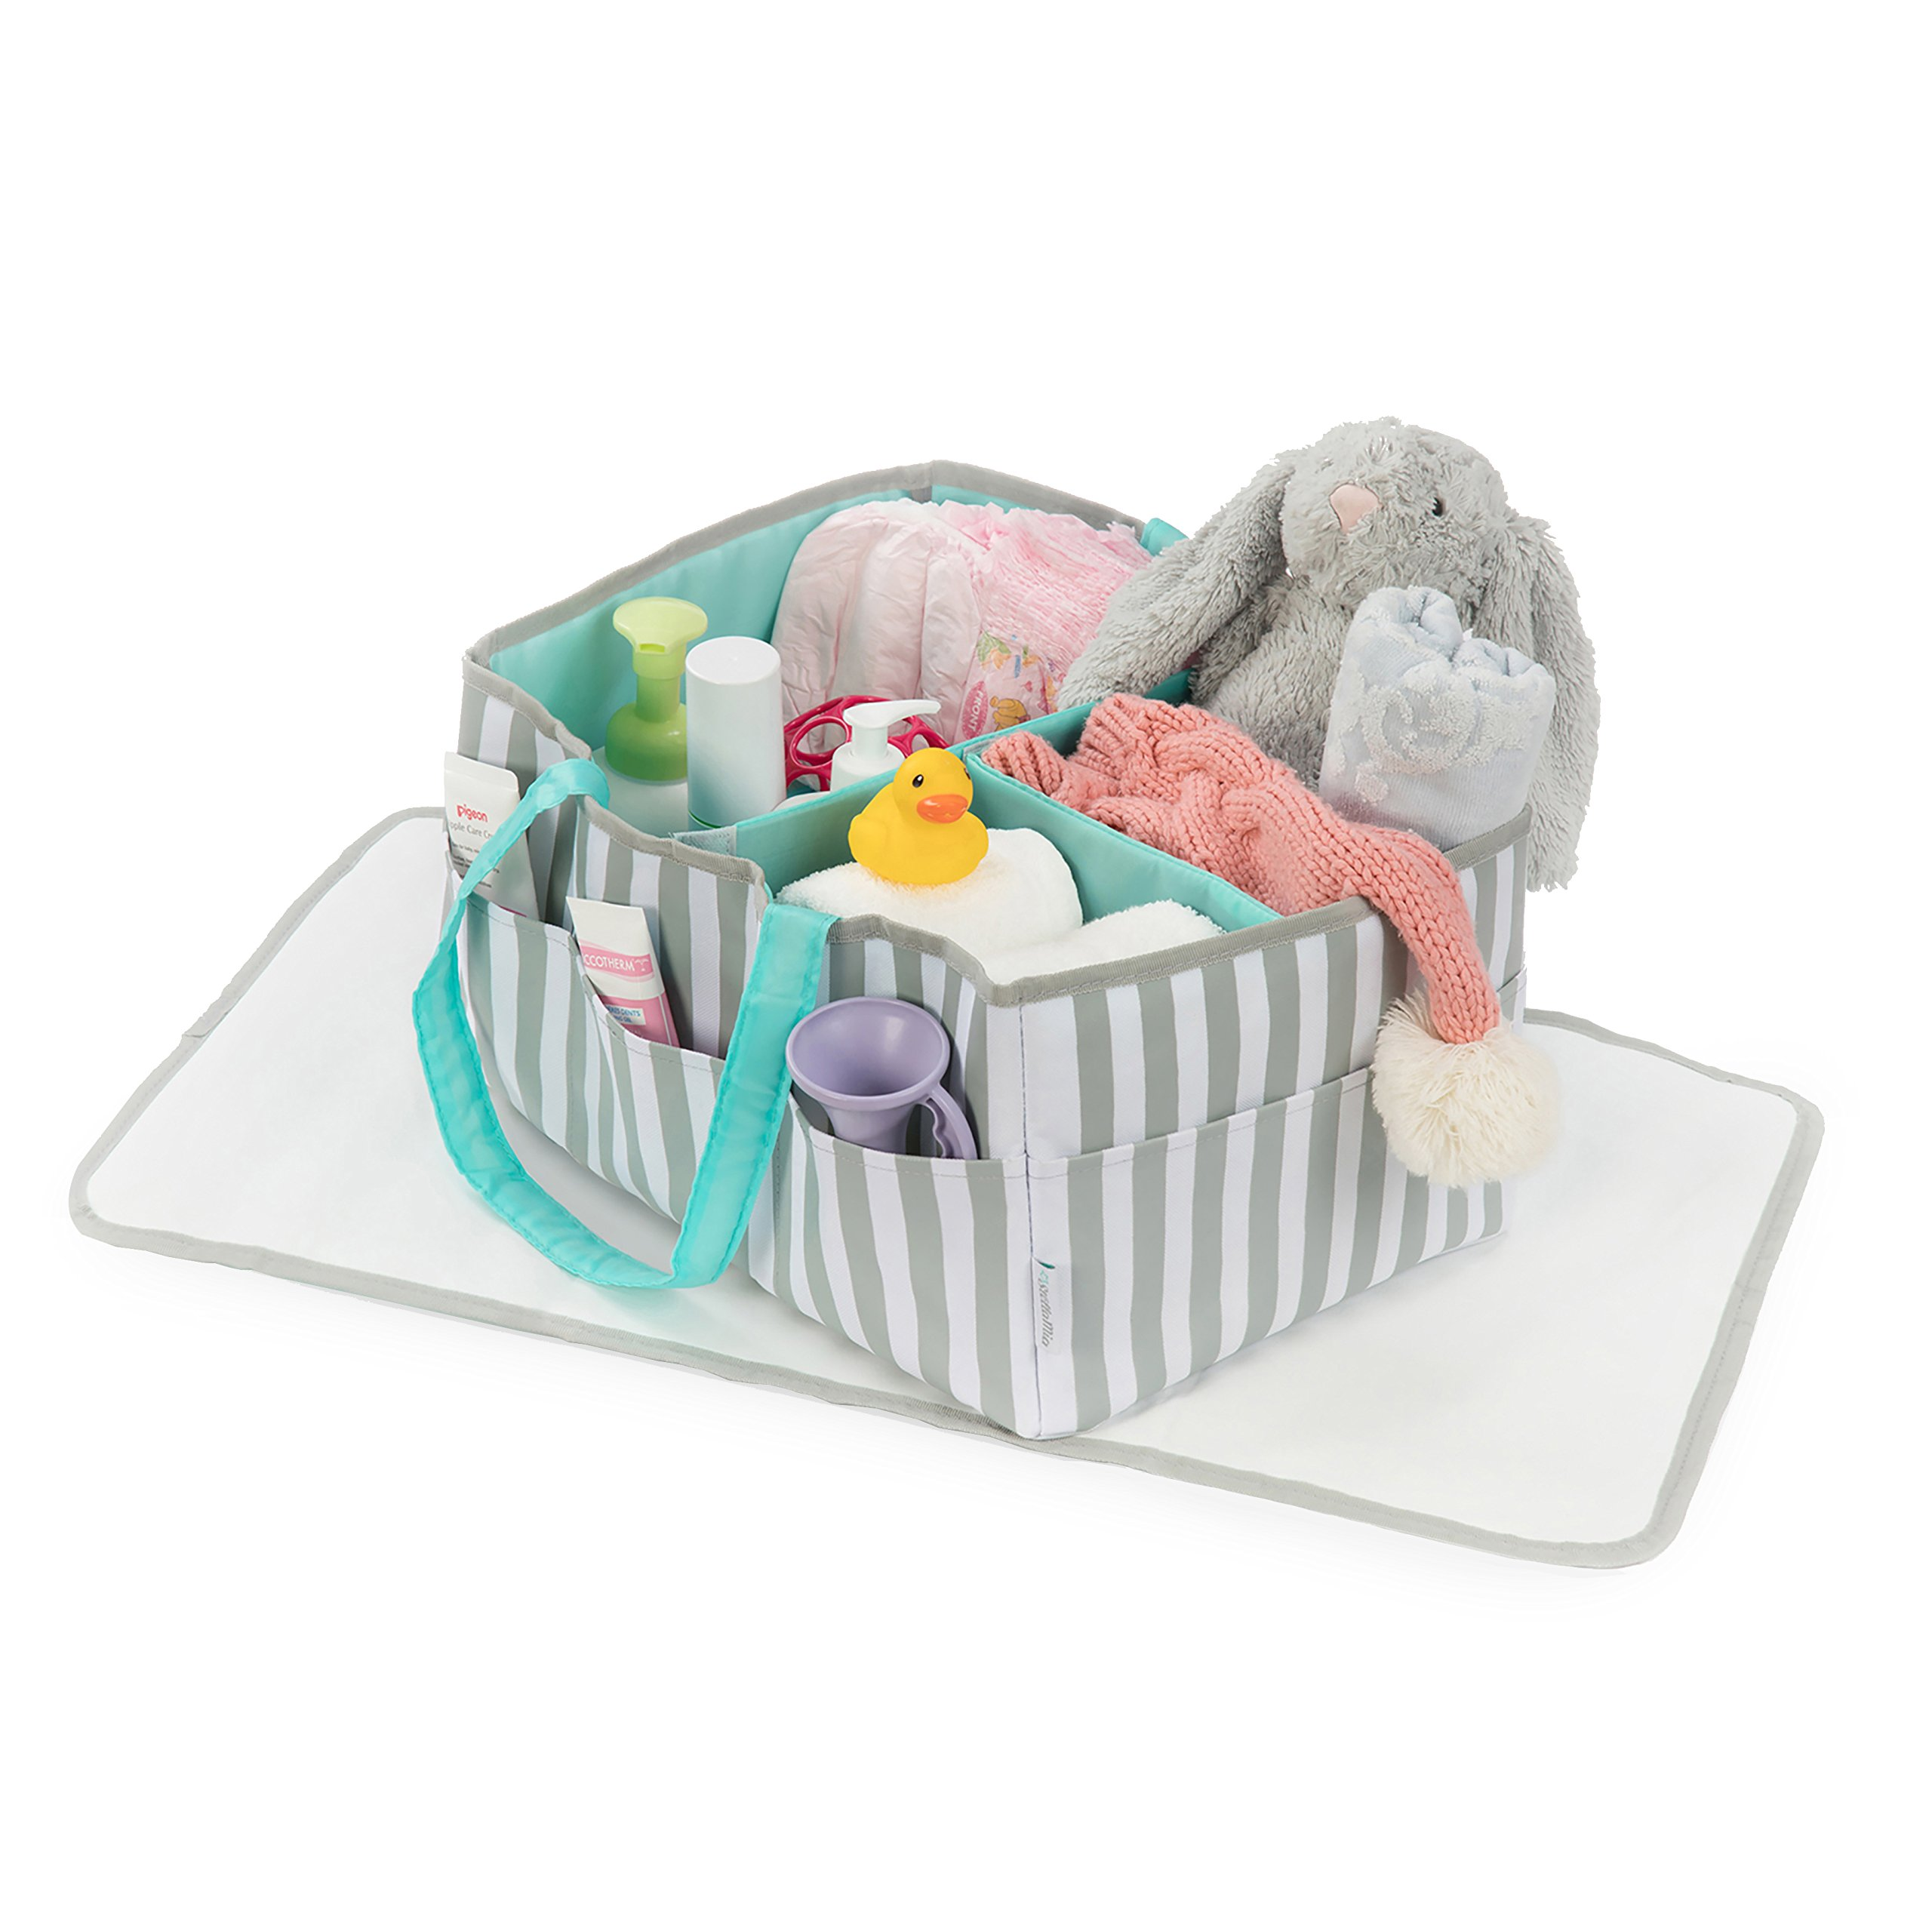 Stella Mia Diaper Caddy [Bonus Changing Pad] - Extra-Large Portable Nursery Diaper Stacker - Changing Table Organizer for Baby Essentials - Perfect Baby Shower Gift, Baby Registry Must Have by Stella Mia (Image #2)